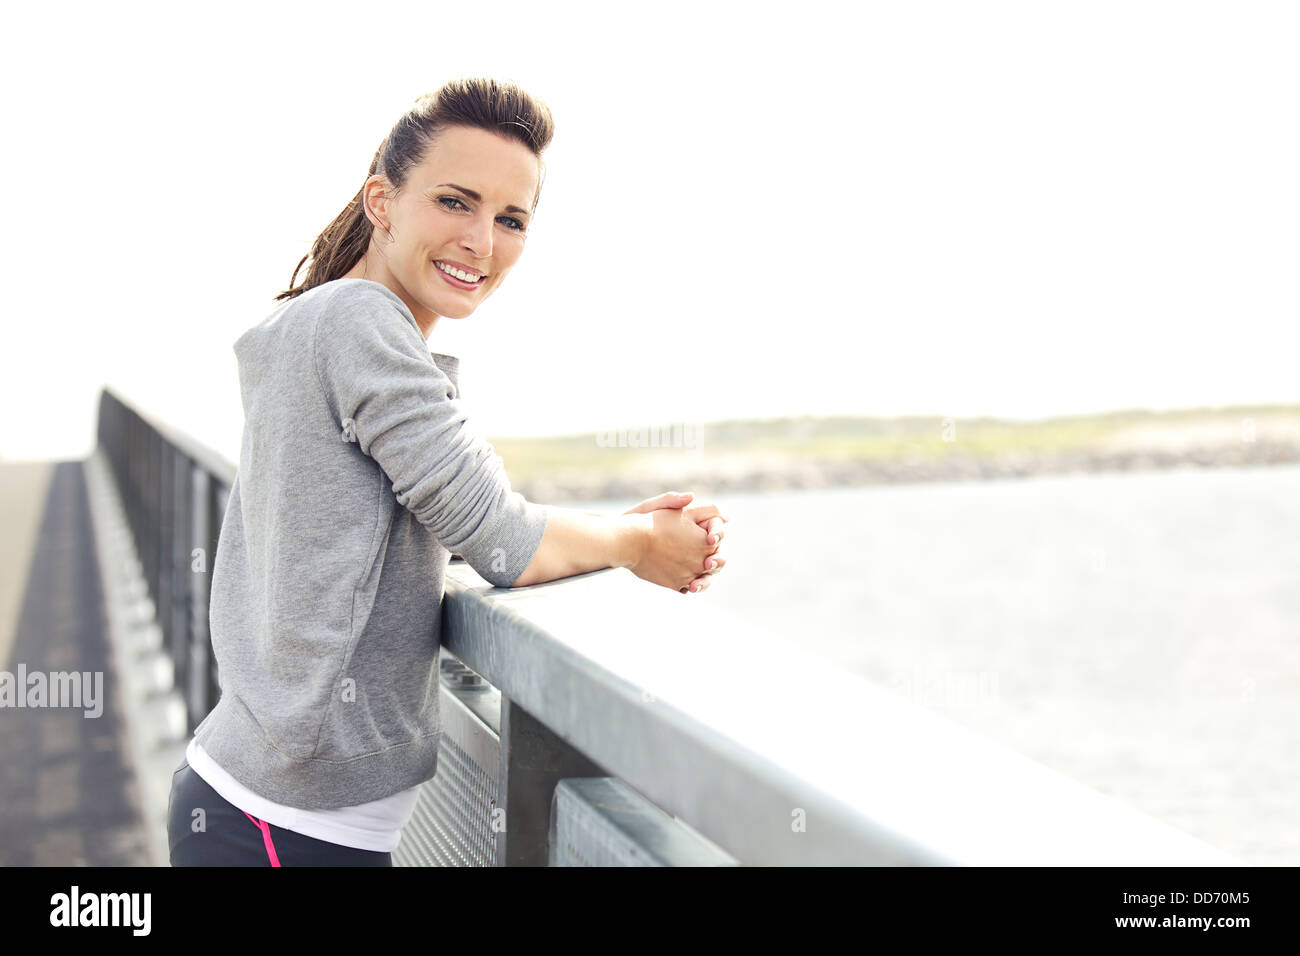 Happy smiling woman in fitness wear resting after running workout. Looking relaxed at camera. Copy space right. - Stock Image